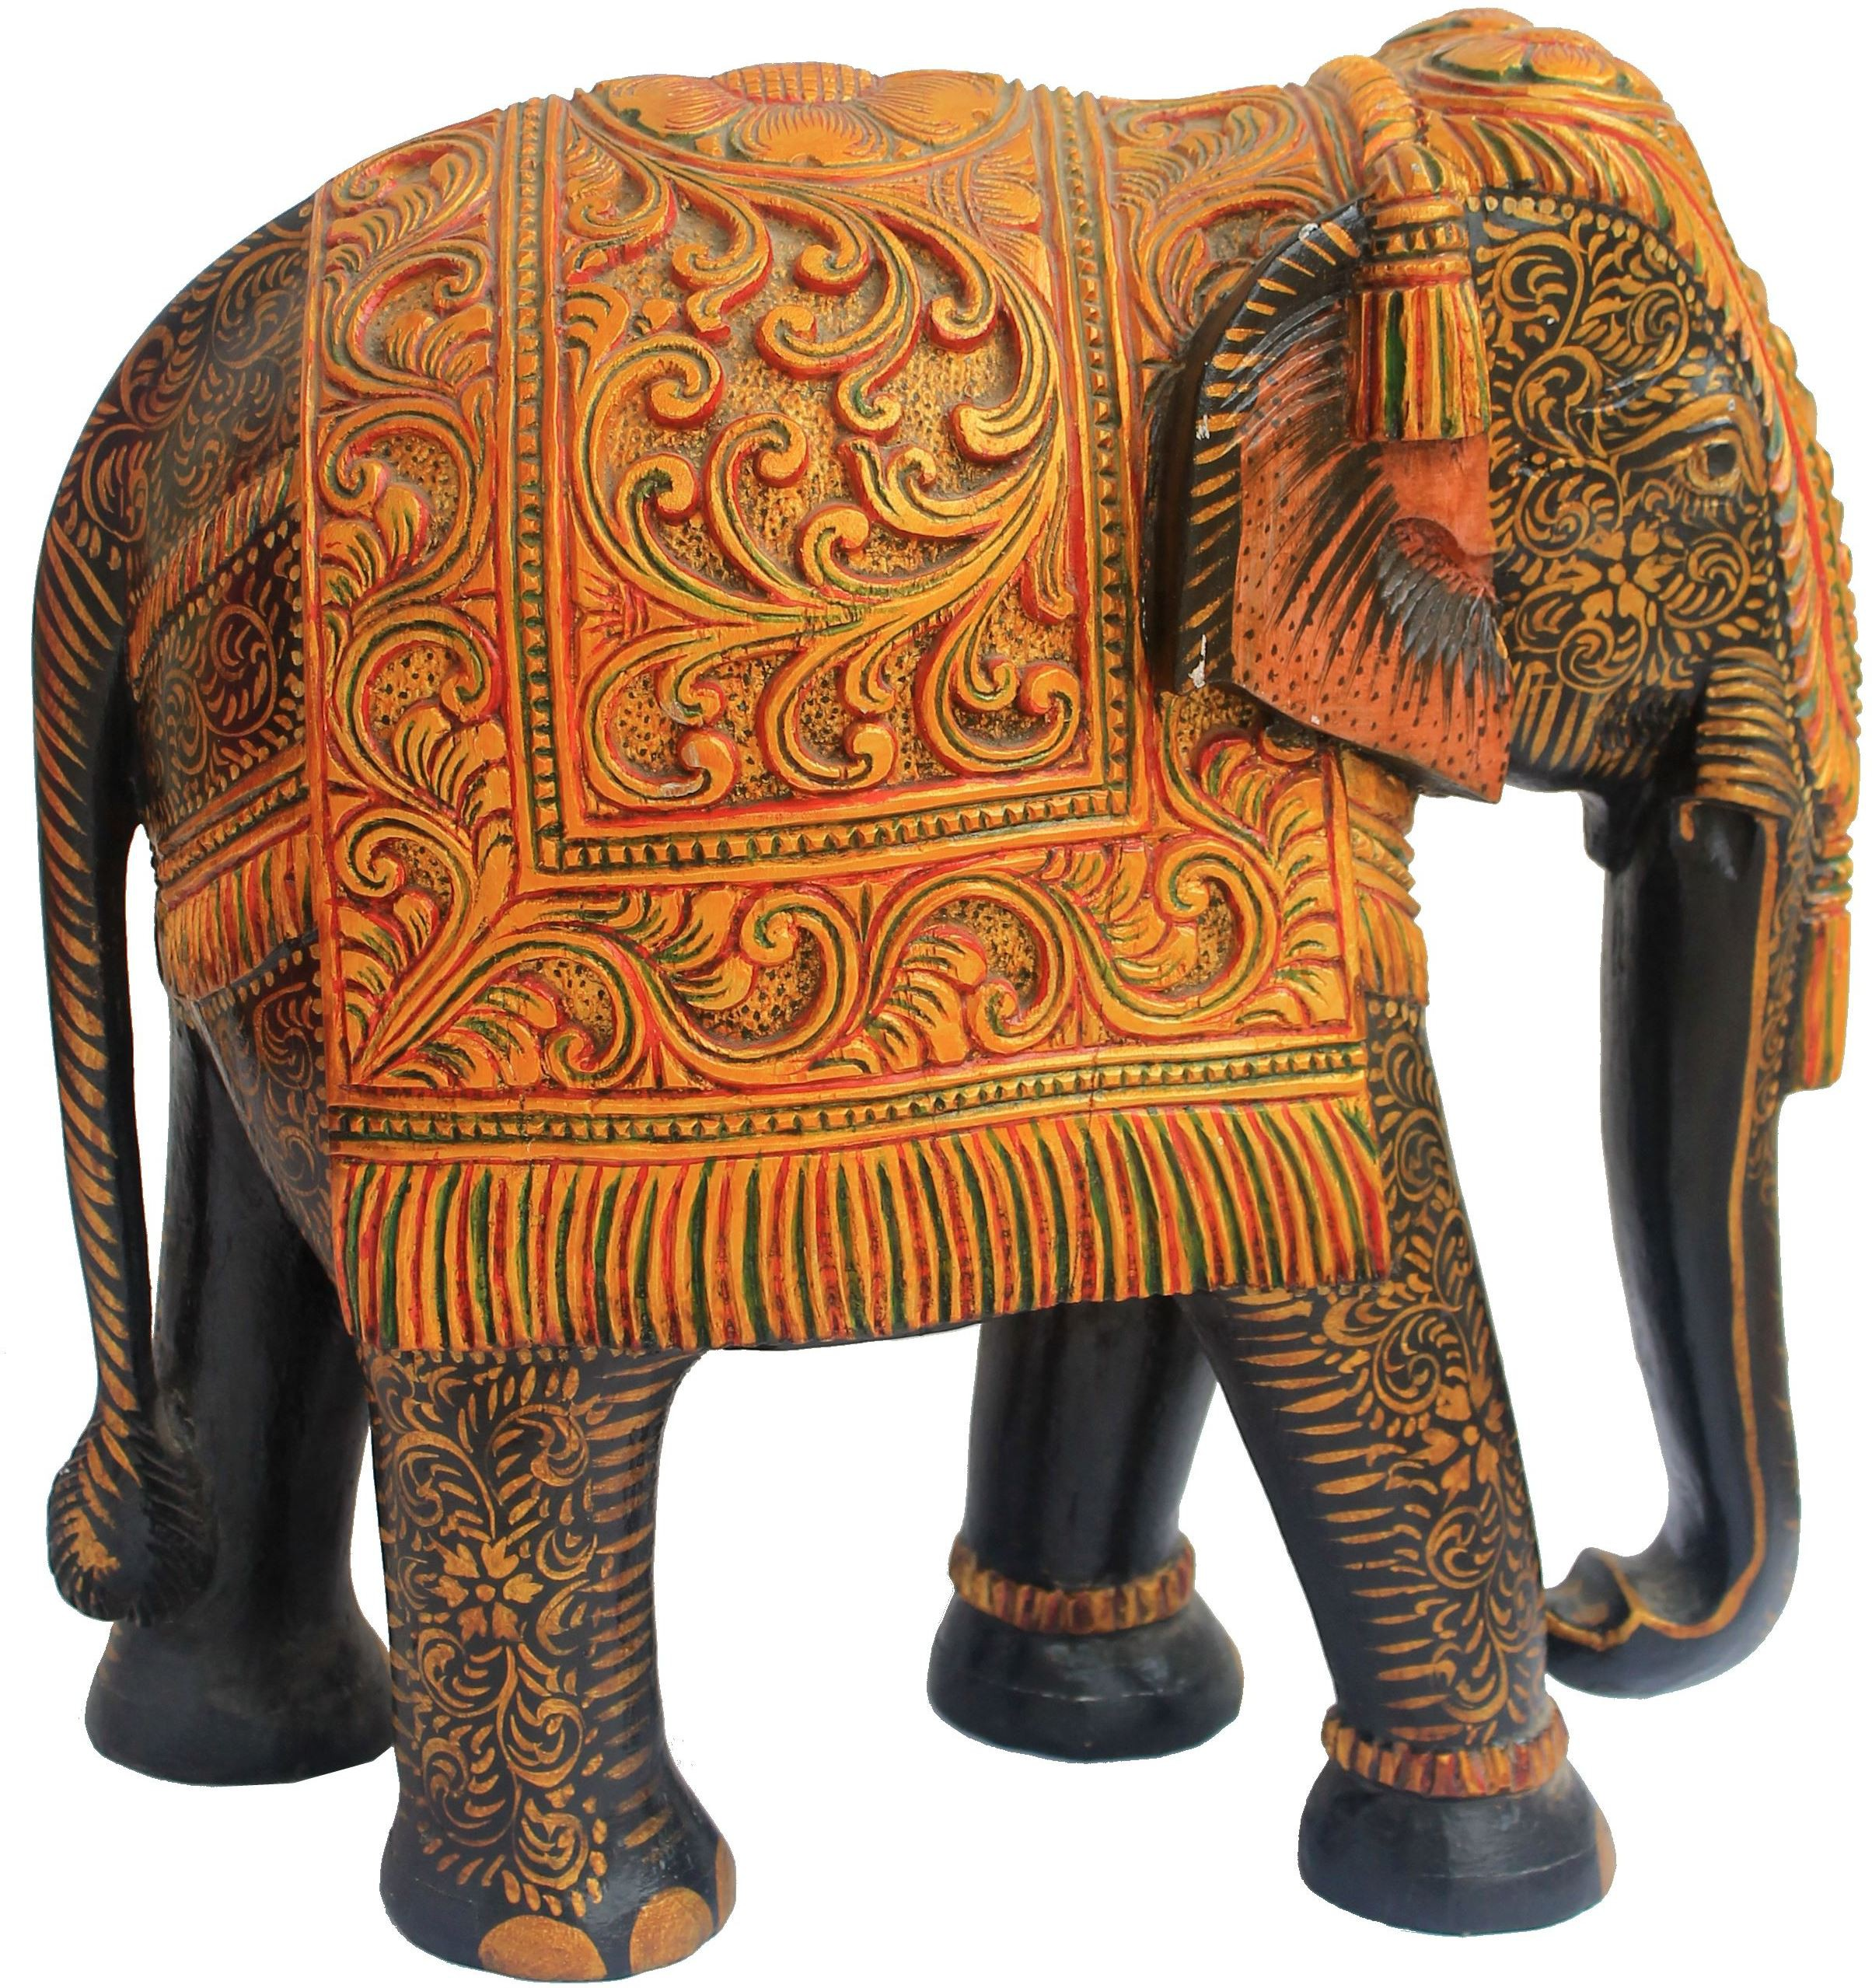 Craft International Elephant Carved Painted - 15 Inch Showpiece  -  19 cm(Wooden, Multicolor)